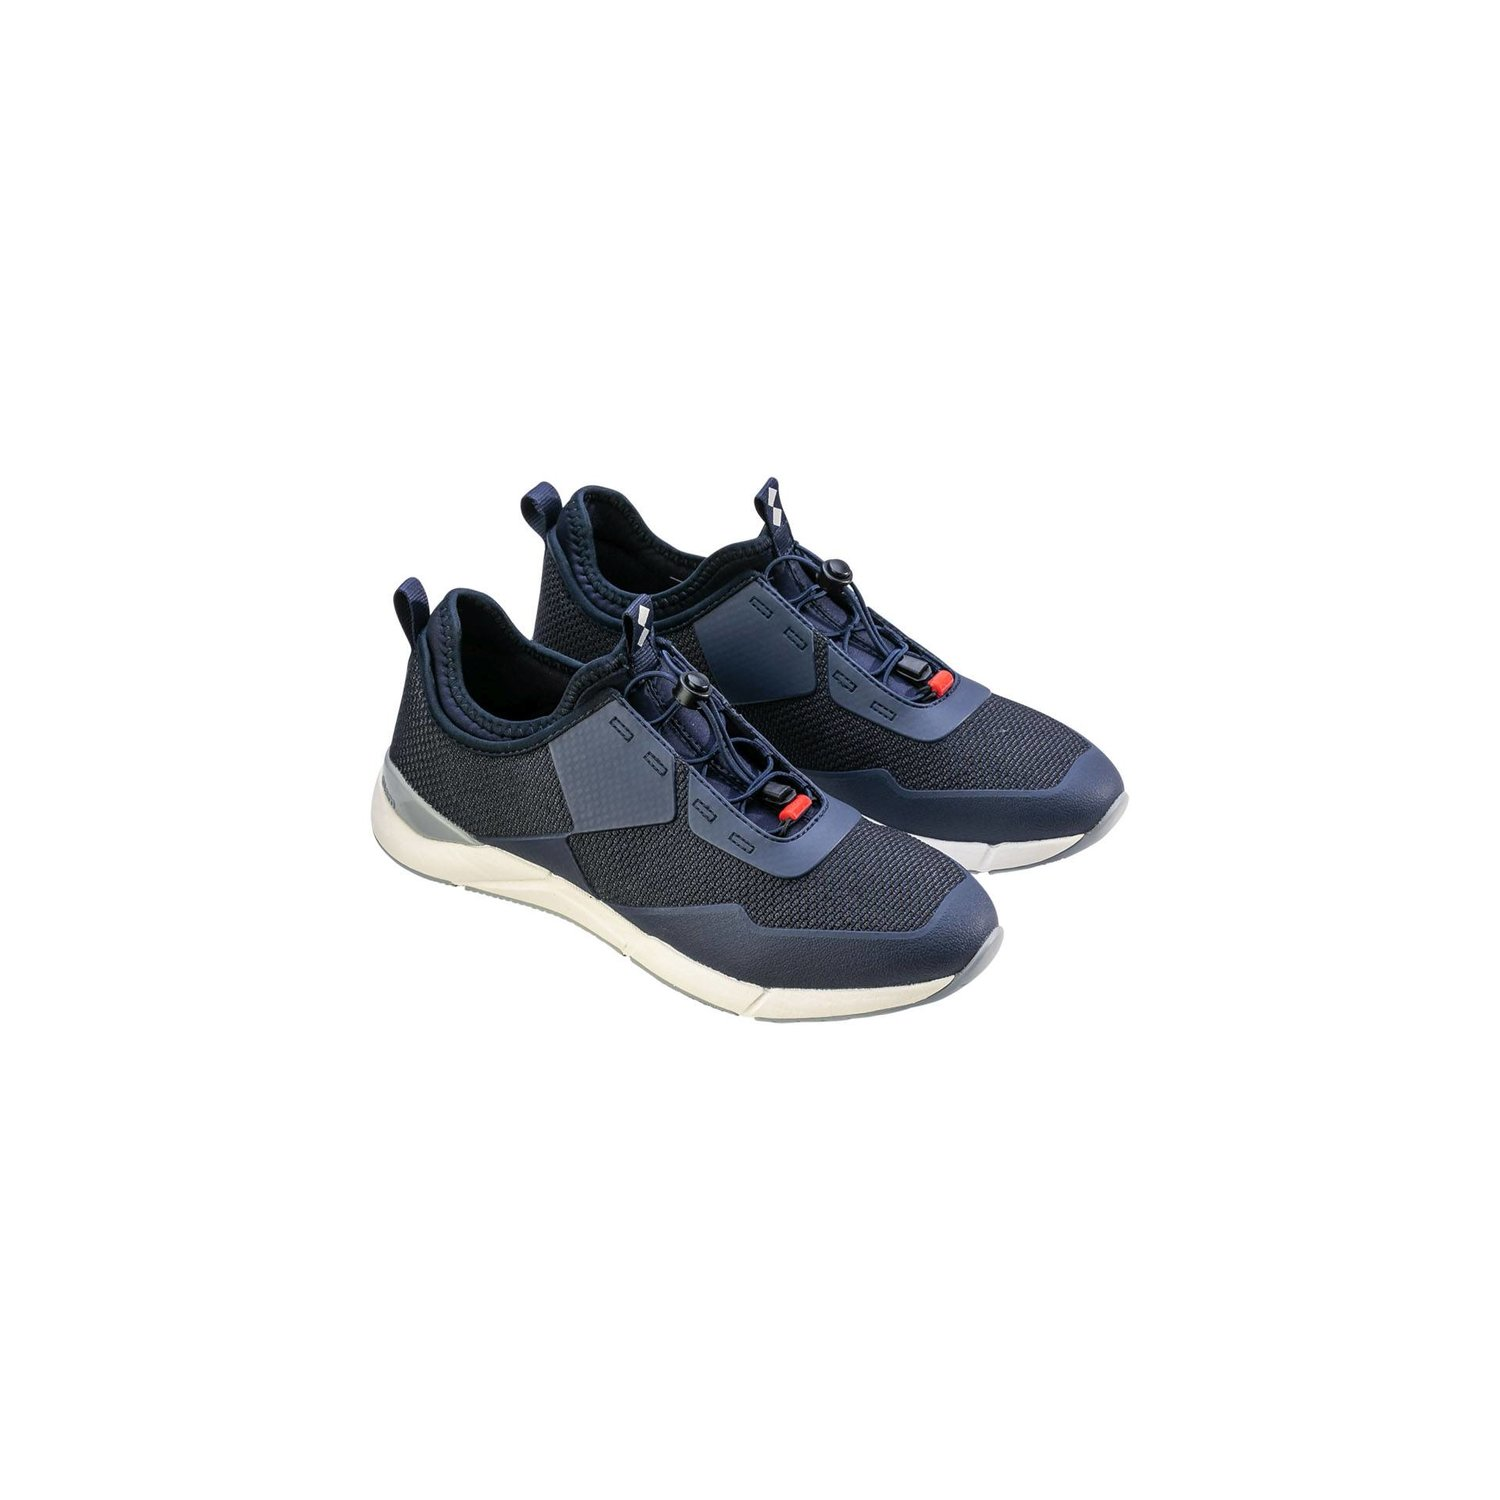 Win-D Technical Shoe - Azul Marino